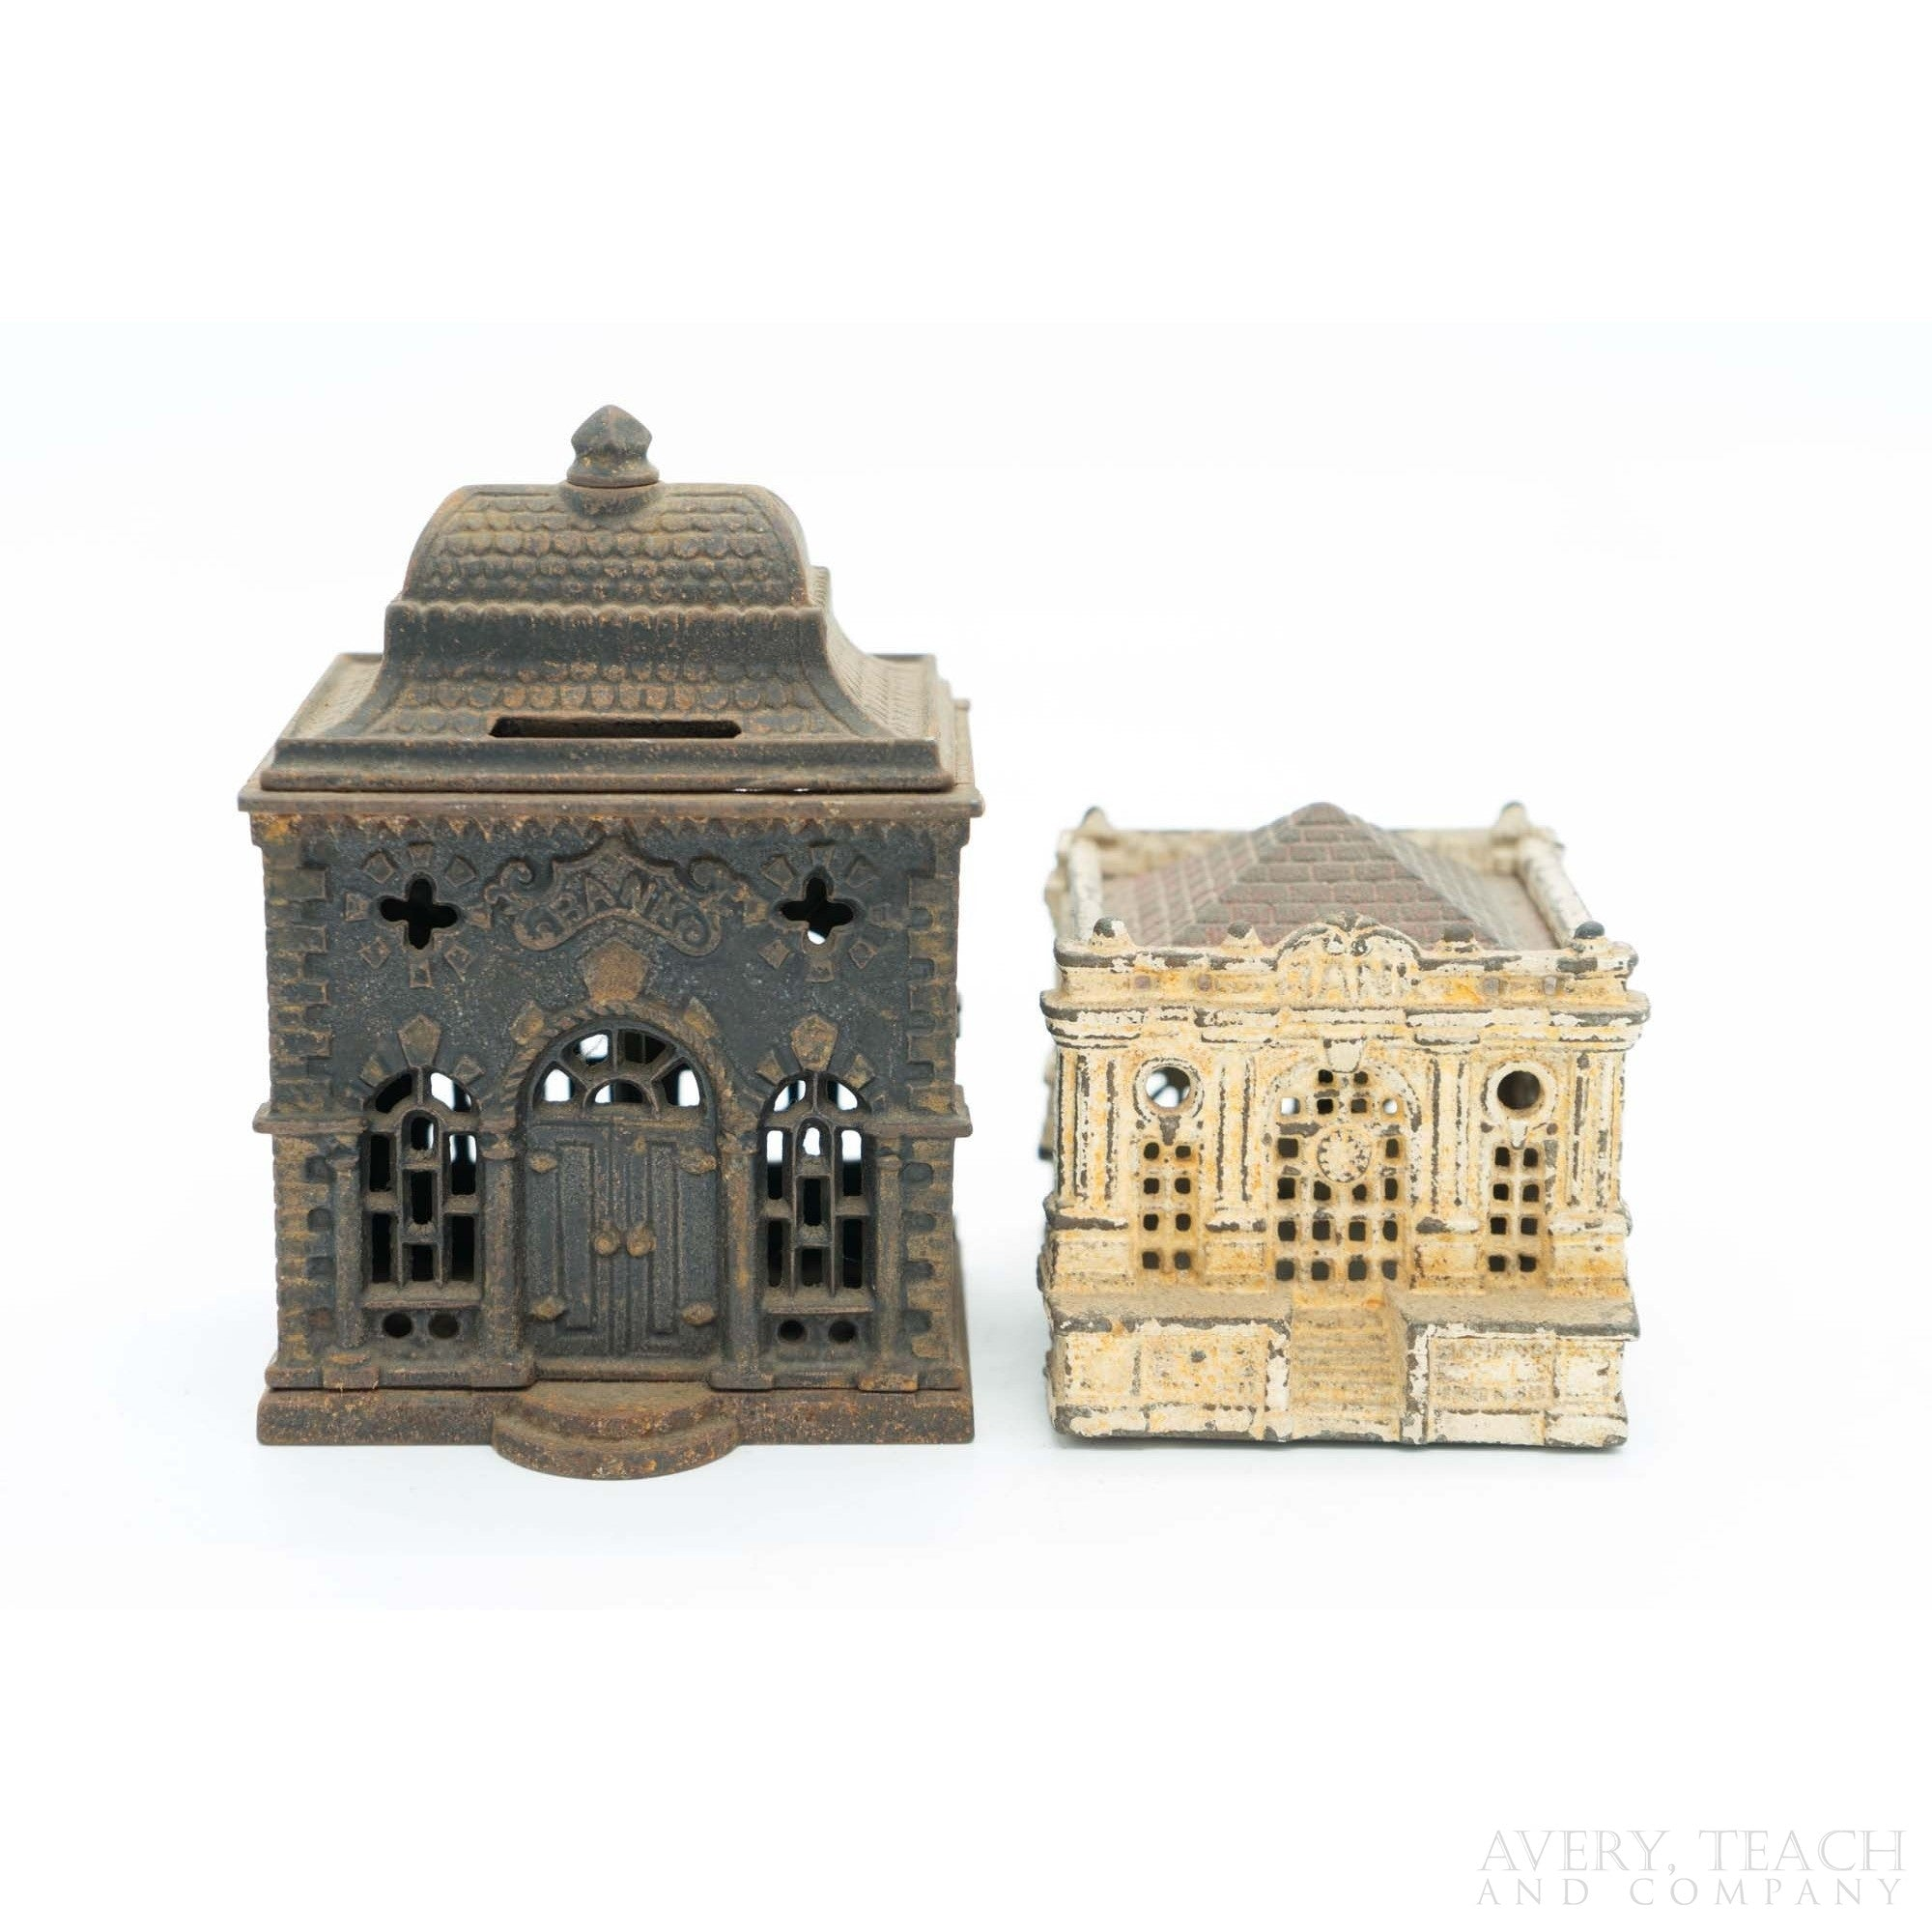 Pair of Antique Cast Iron Bank Building Still Banks